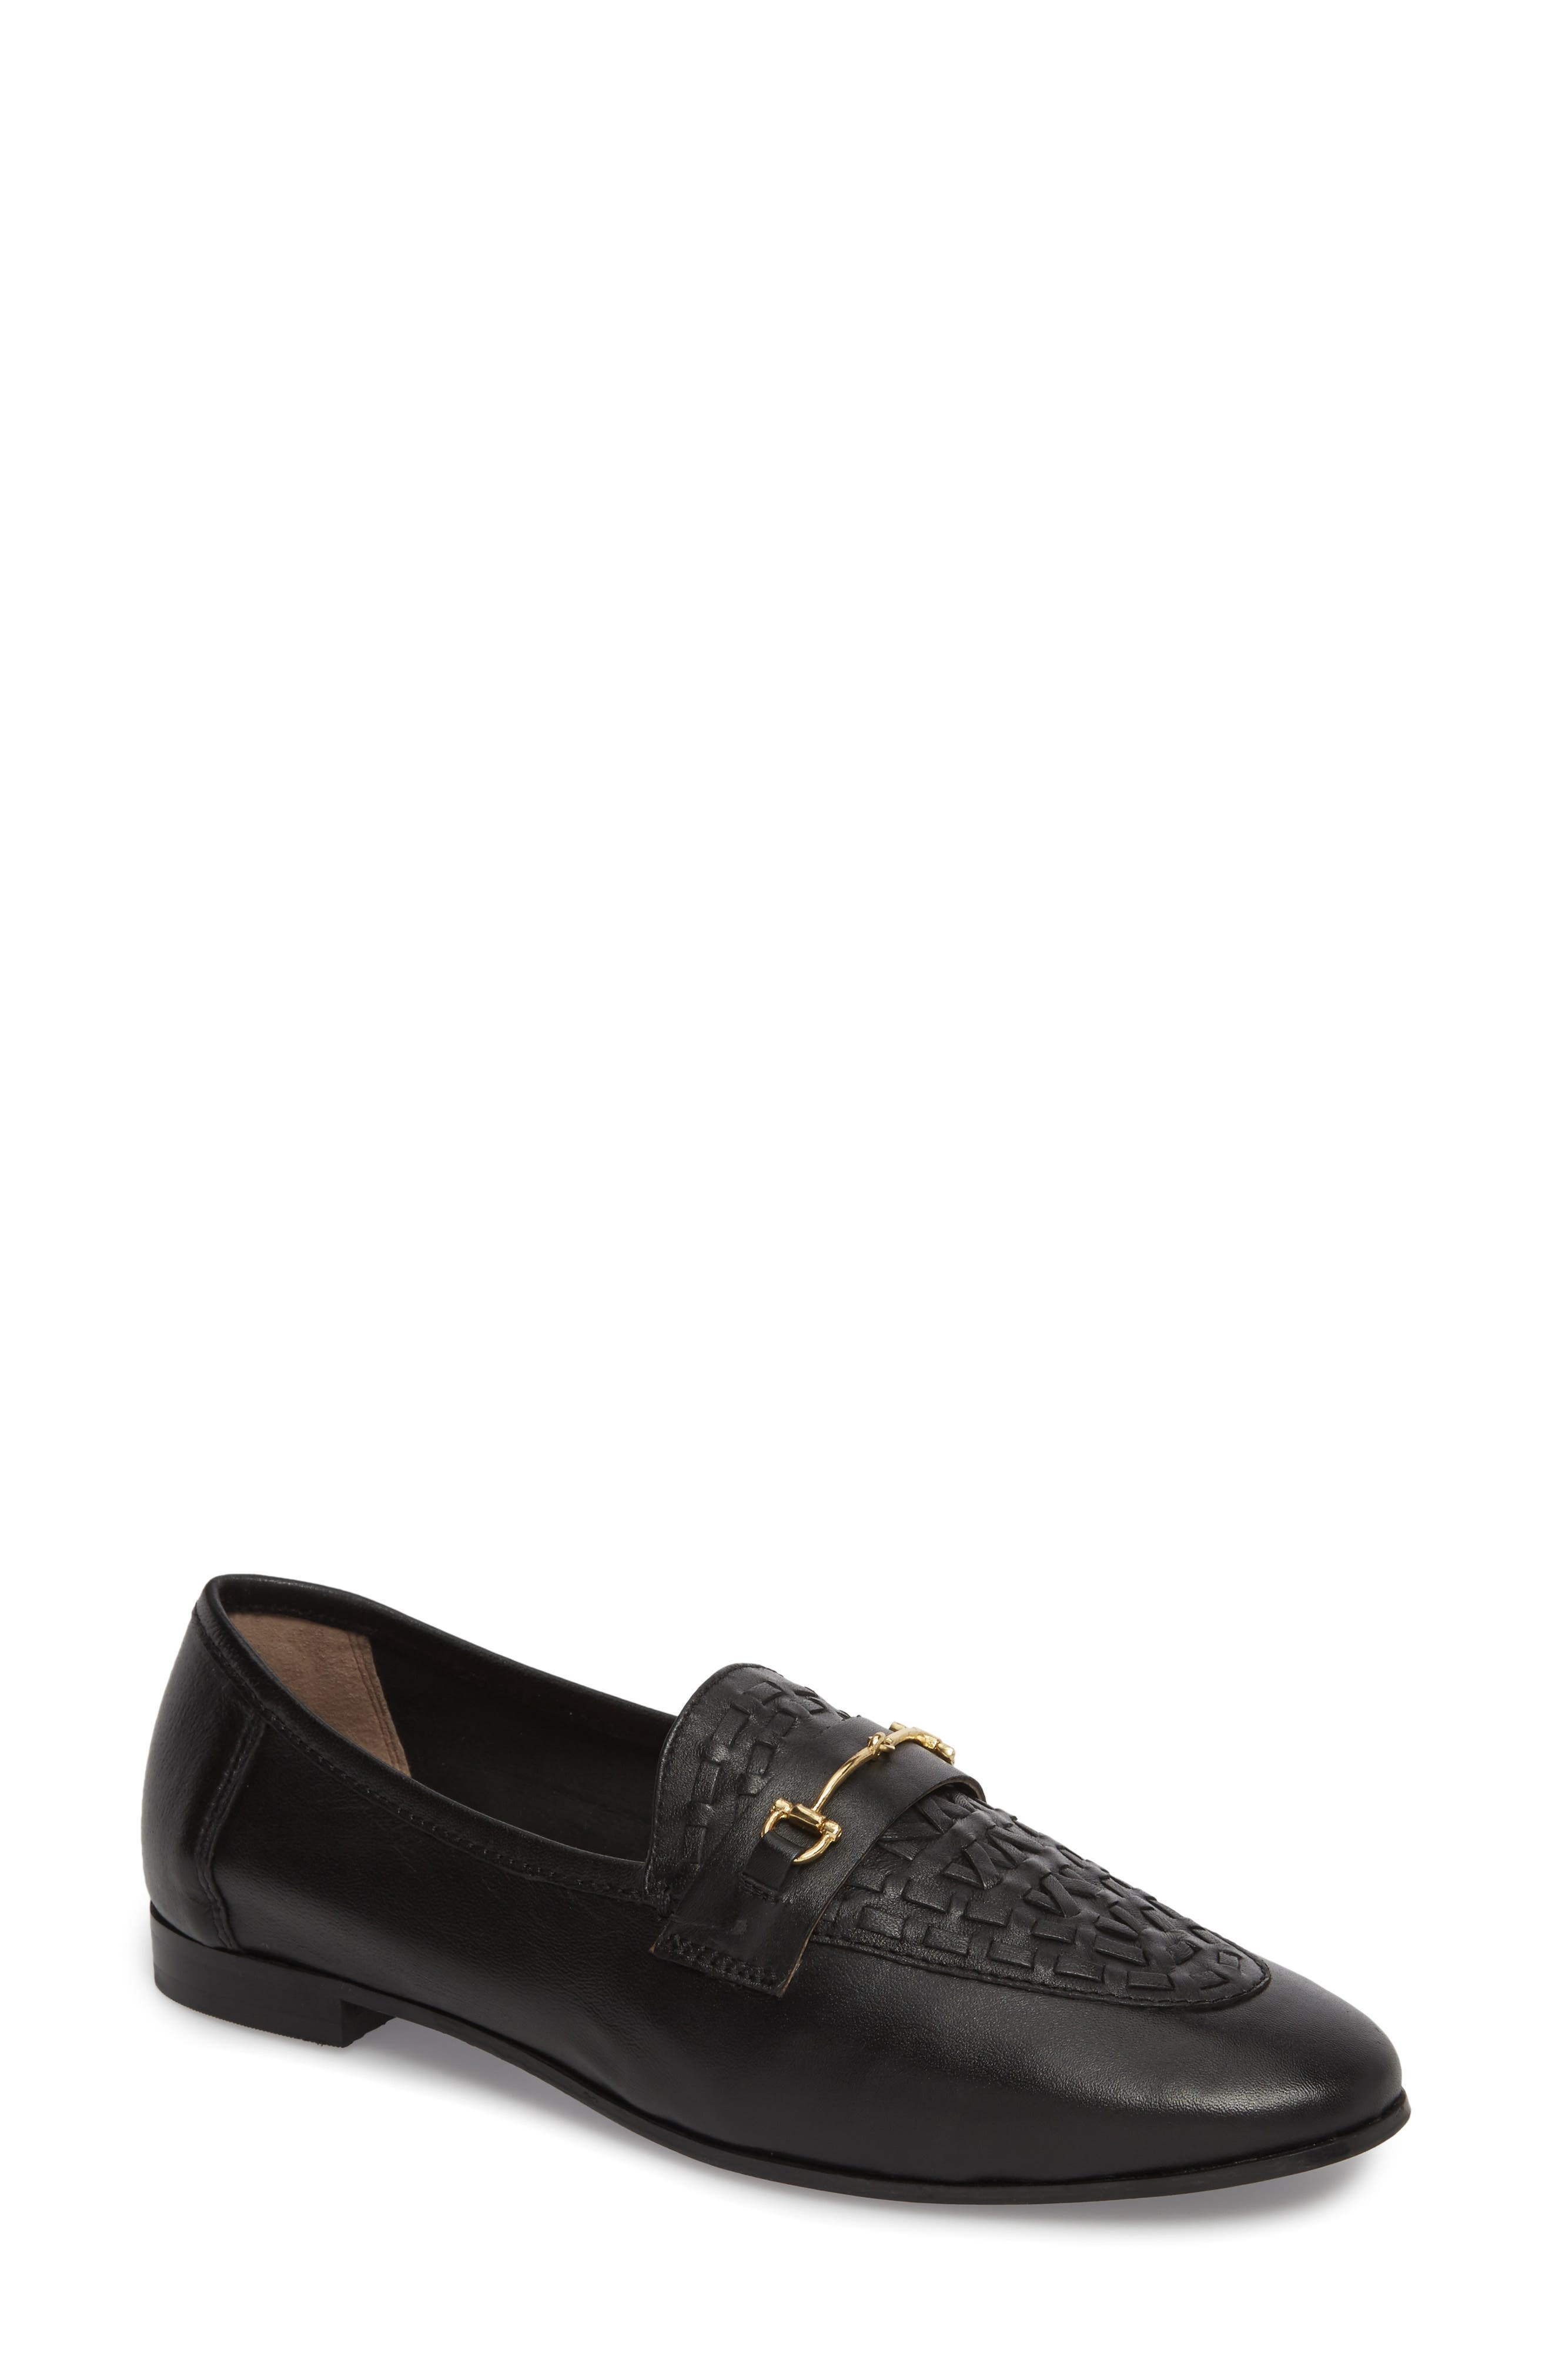 Topshop Kingley Woven Loafer (Women)